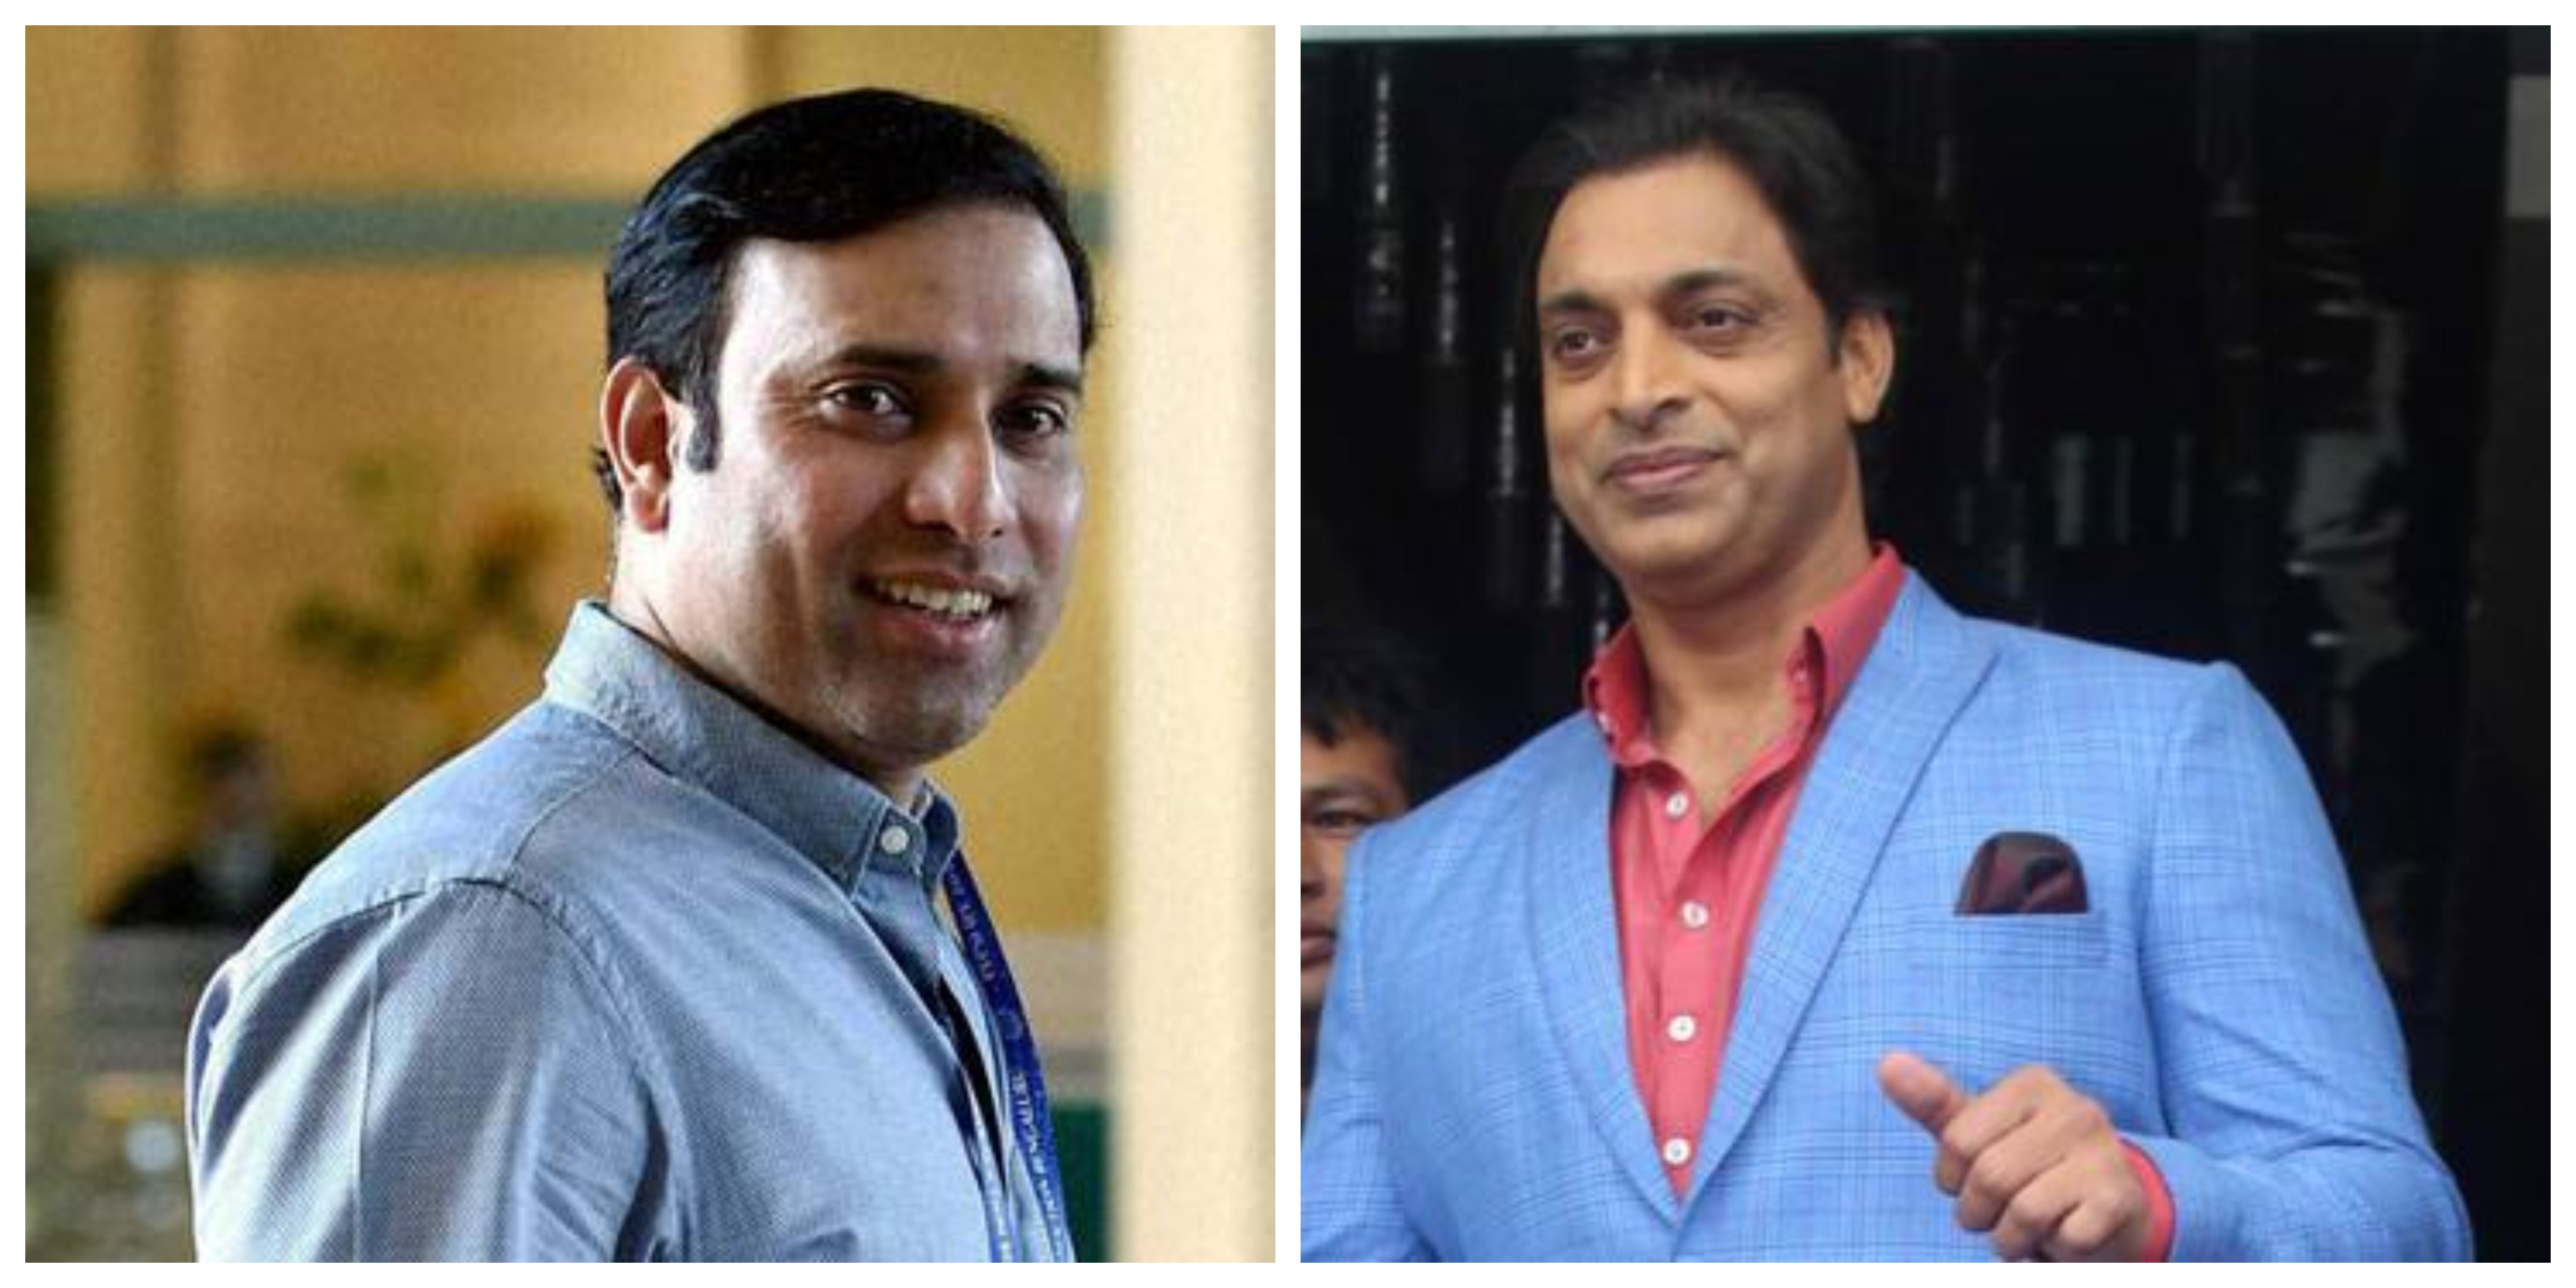 VVS Laxman and Shoaib Akhtar have been included in Elite list of coaches that have signed up with UAE T20x.